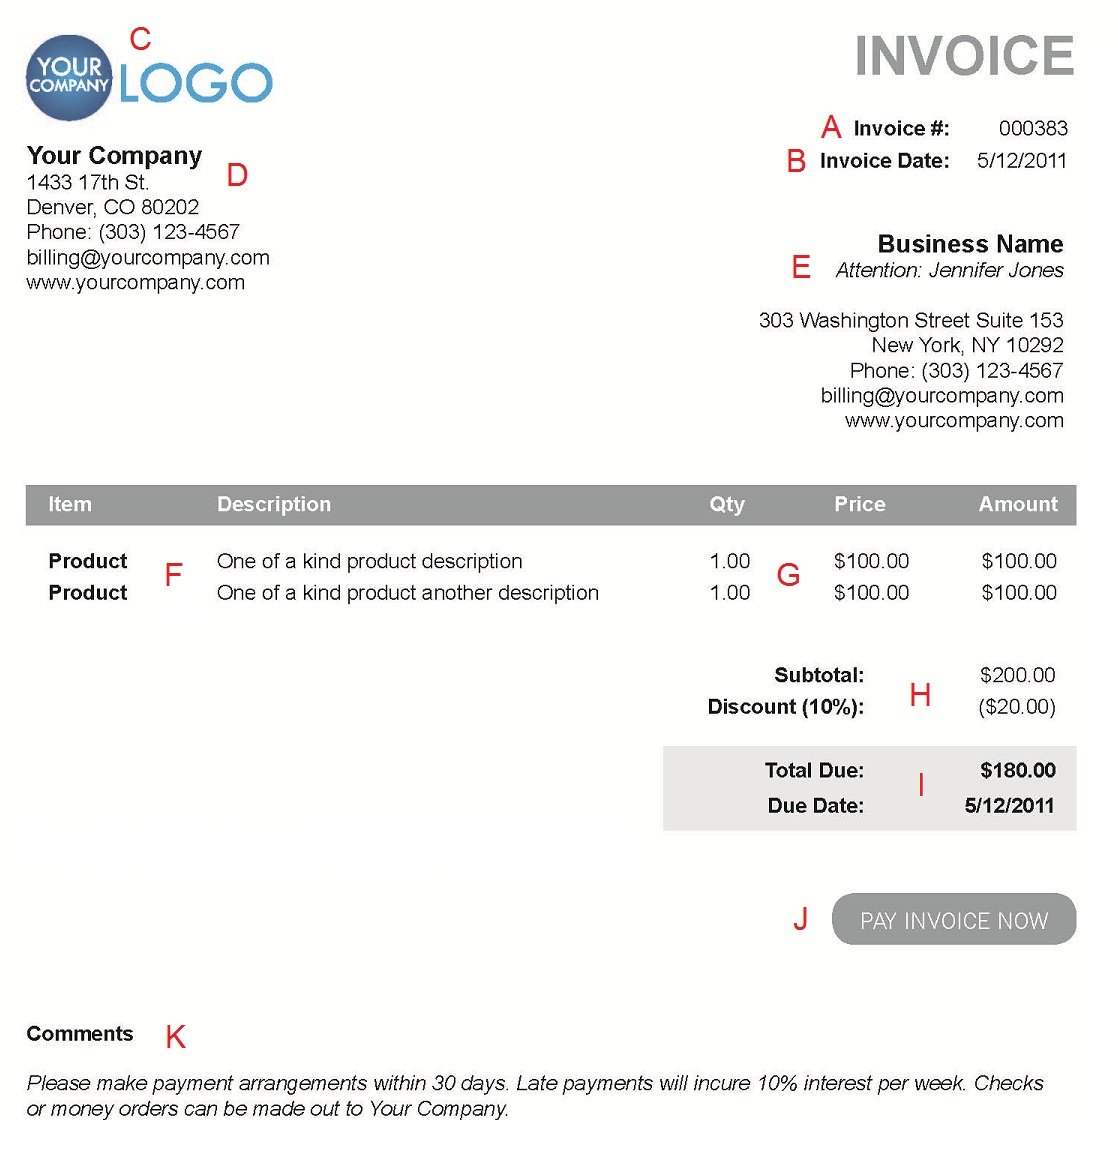 Adoringacklesus  Surprising The  Different Sections Of An Electronic Payment Invoice With Licious A  With Archaic Please Confirm Receipt Of Payment Also Cash Payment Receipt Template Word In Addition Bpa Free Thermal Receipt Paper And Home Receipt Scanner As Well As Receipt Form For Payment Additionally Blank Payment Receipt From Paysimplecom With Adoringacklesus  Licious The  Different Sections Of An Electronic Payment Invoice With Archaic A  And Surprising Please Confirm Receipt Of Payment Also Cash Payment Receipt Template Word In Addition Bpa Free Thermal Receipt Paper From Paysimplecom